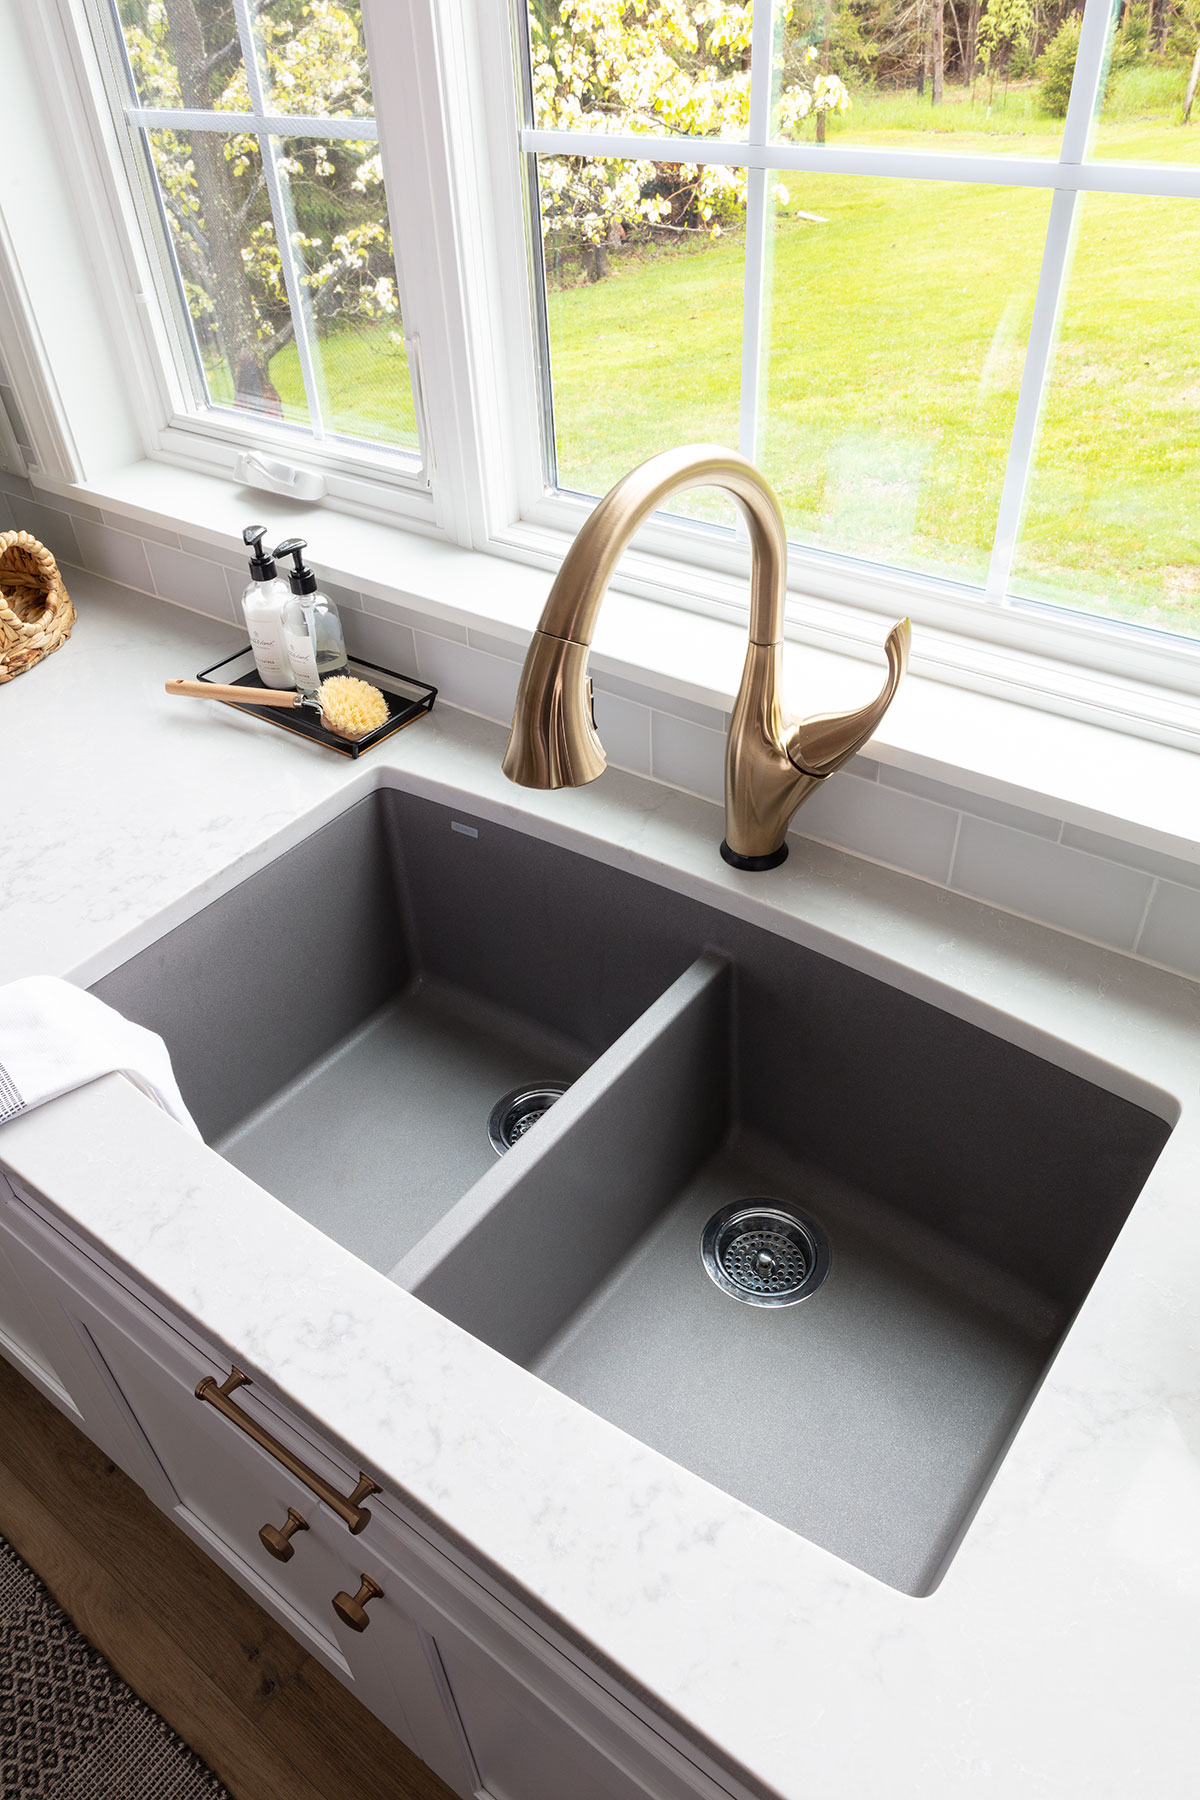 white kitchen with blue island sink and faucet